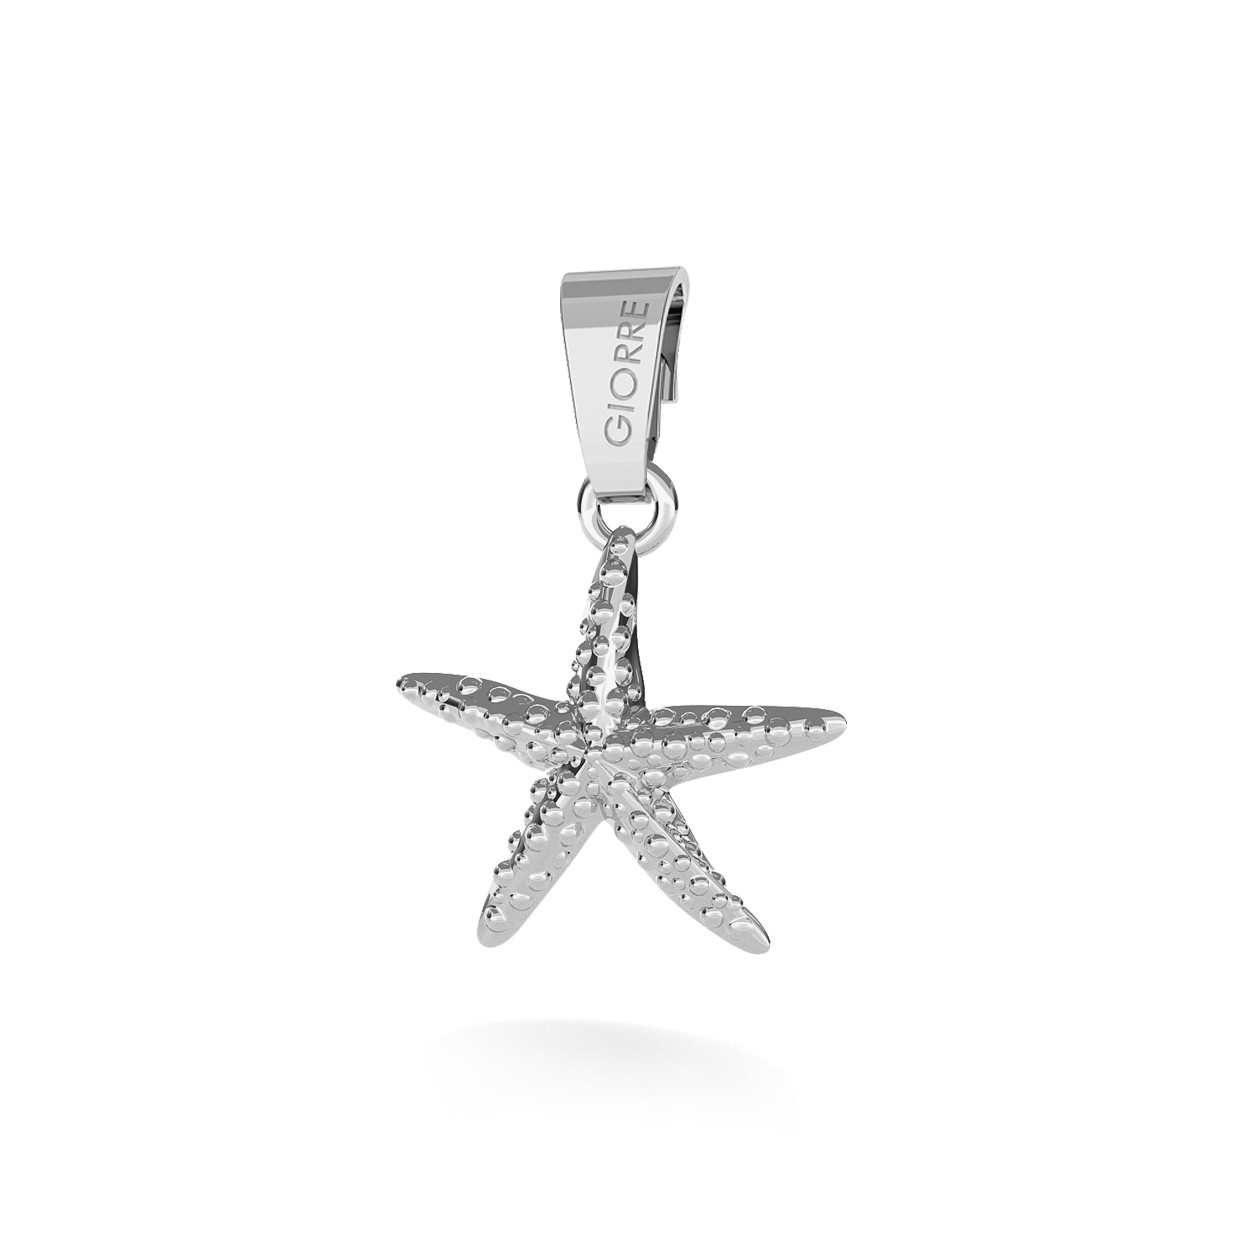 CHARM 19, STARFISH, SILVER 925, RHODIUM OR GOLD PLATED